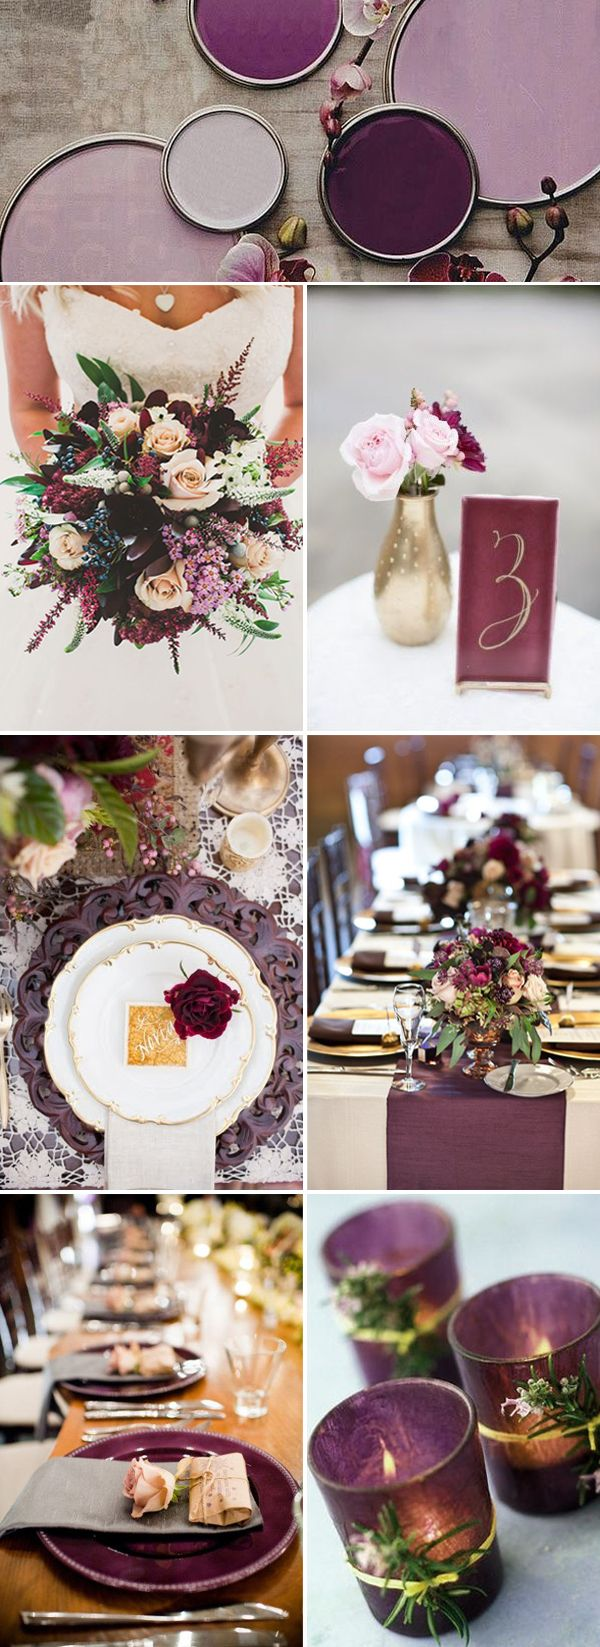 127 Best Wedding Images On Pinterest Floral Arrangements Wedding